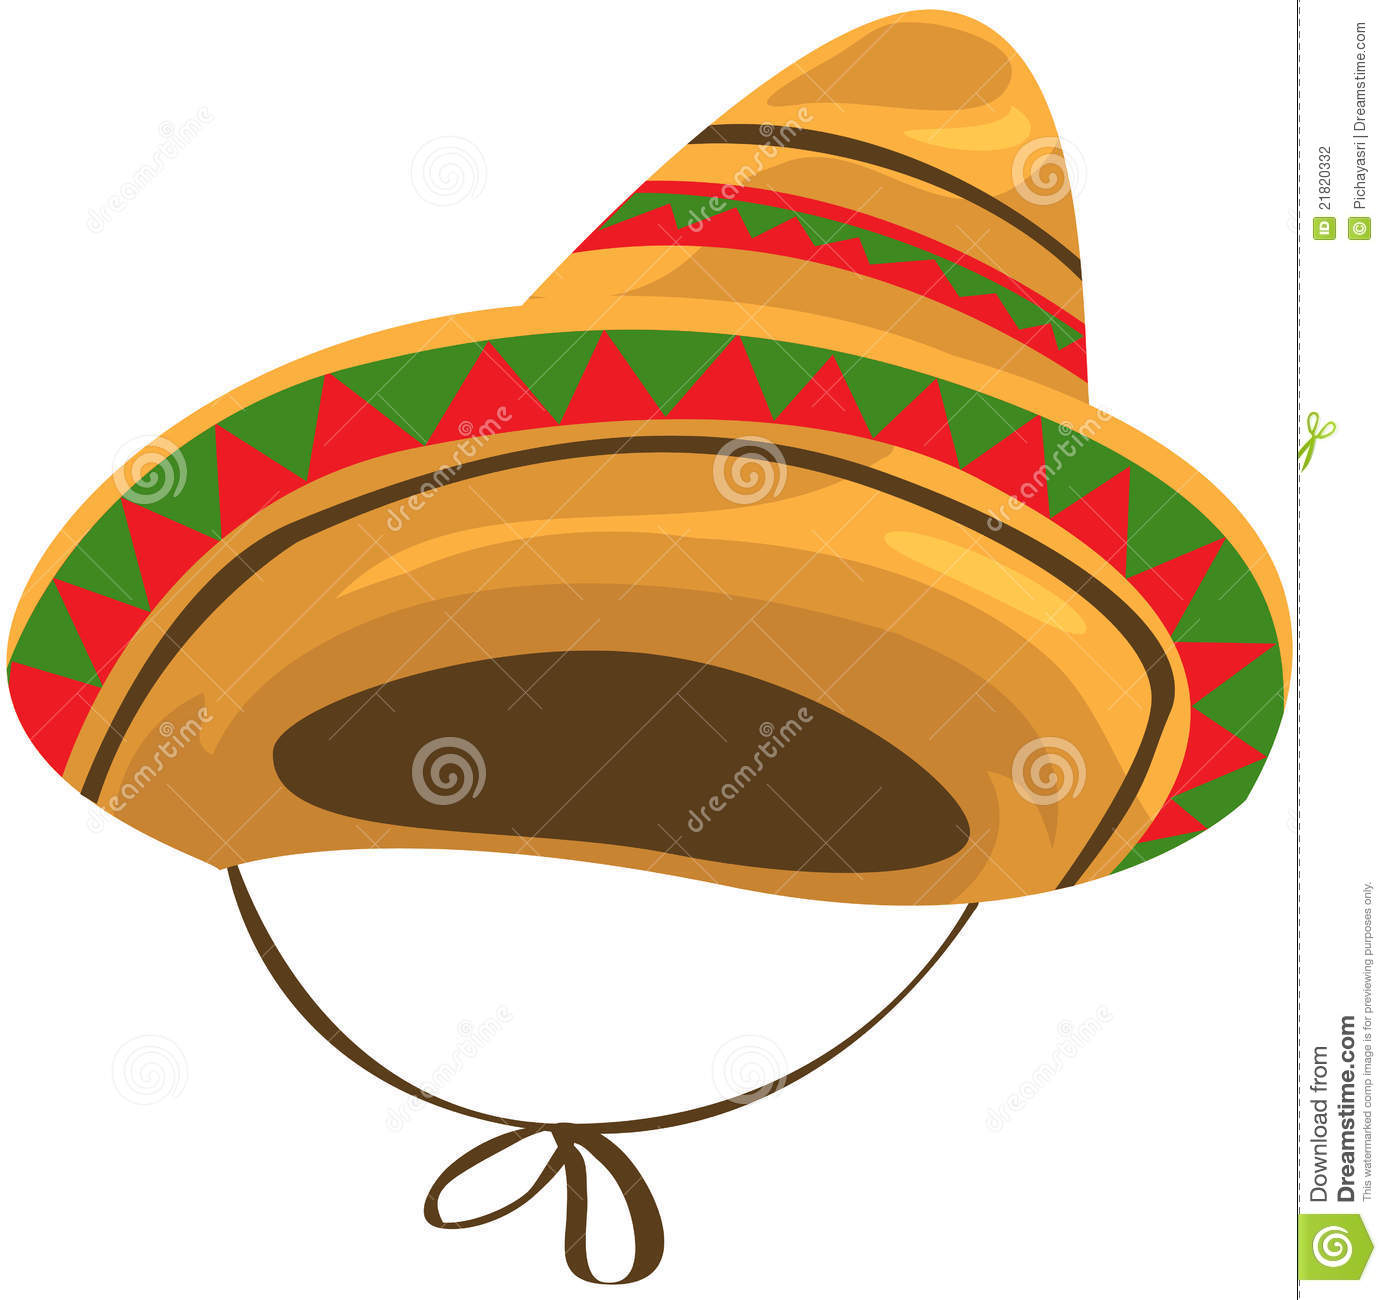 Illustration of isolated a sombrero straw hat on white. Designers Also  Selected These Stock Illustrations 43dd64492f1